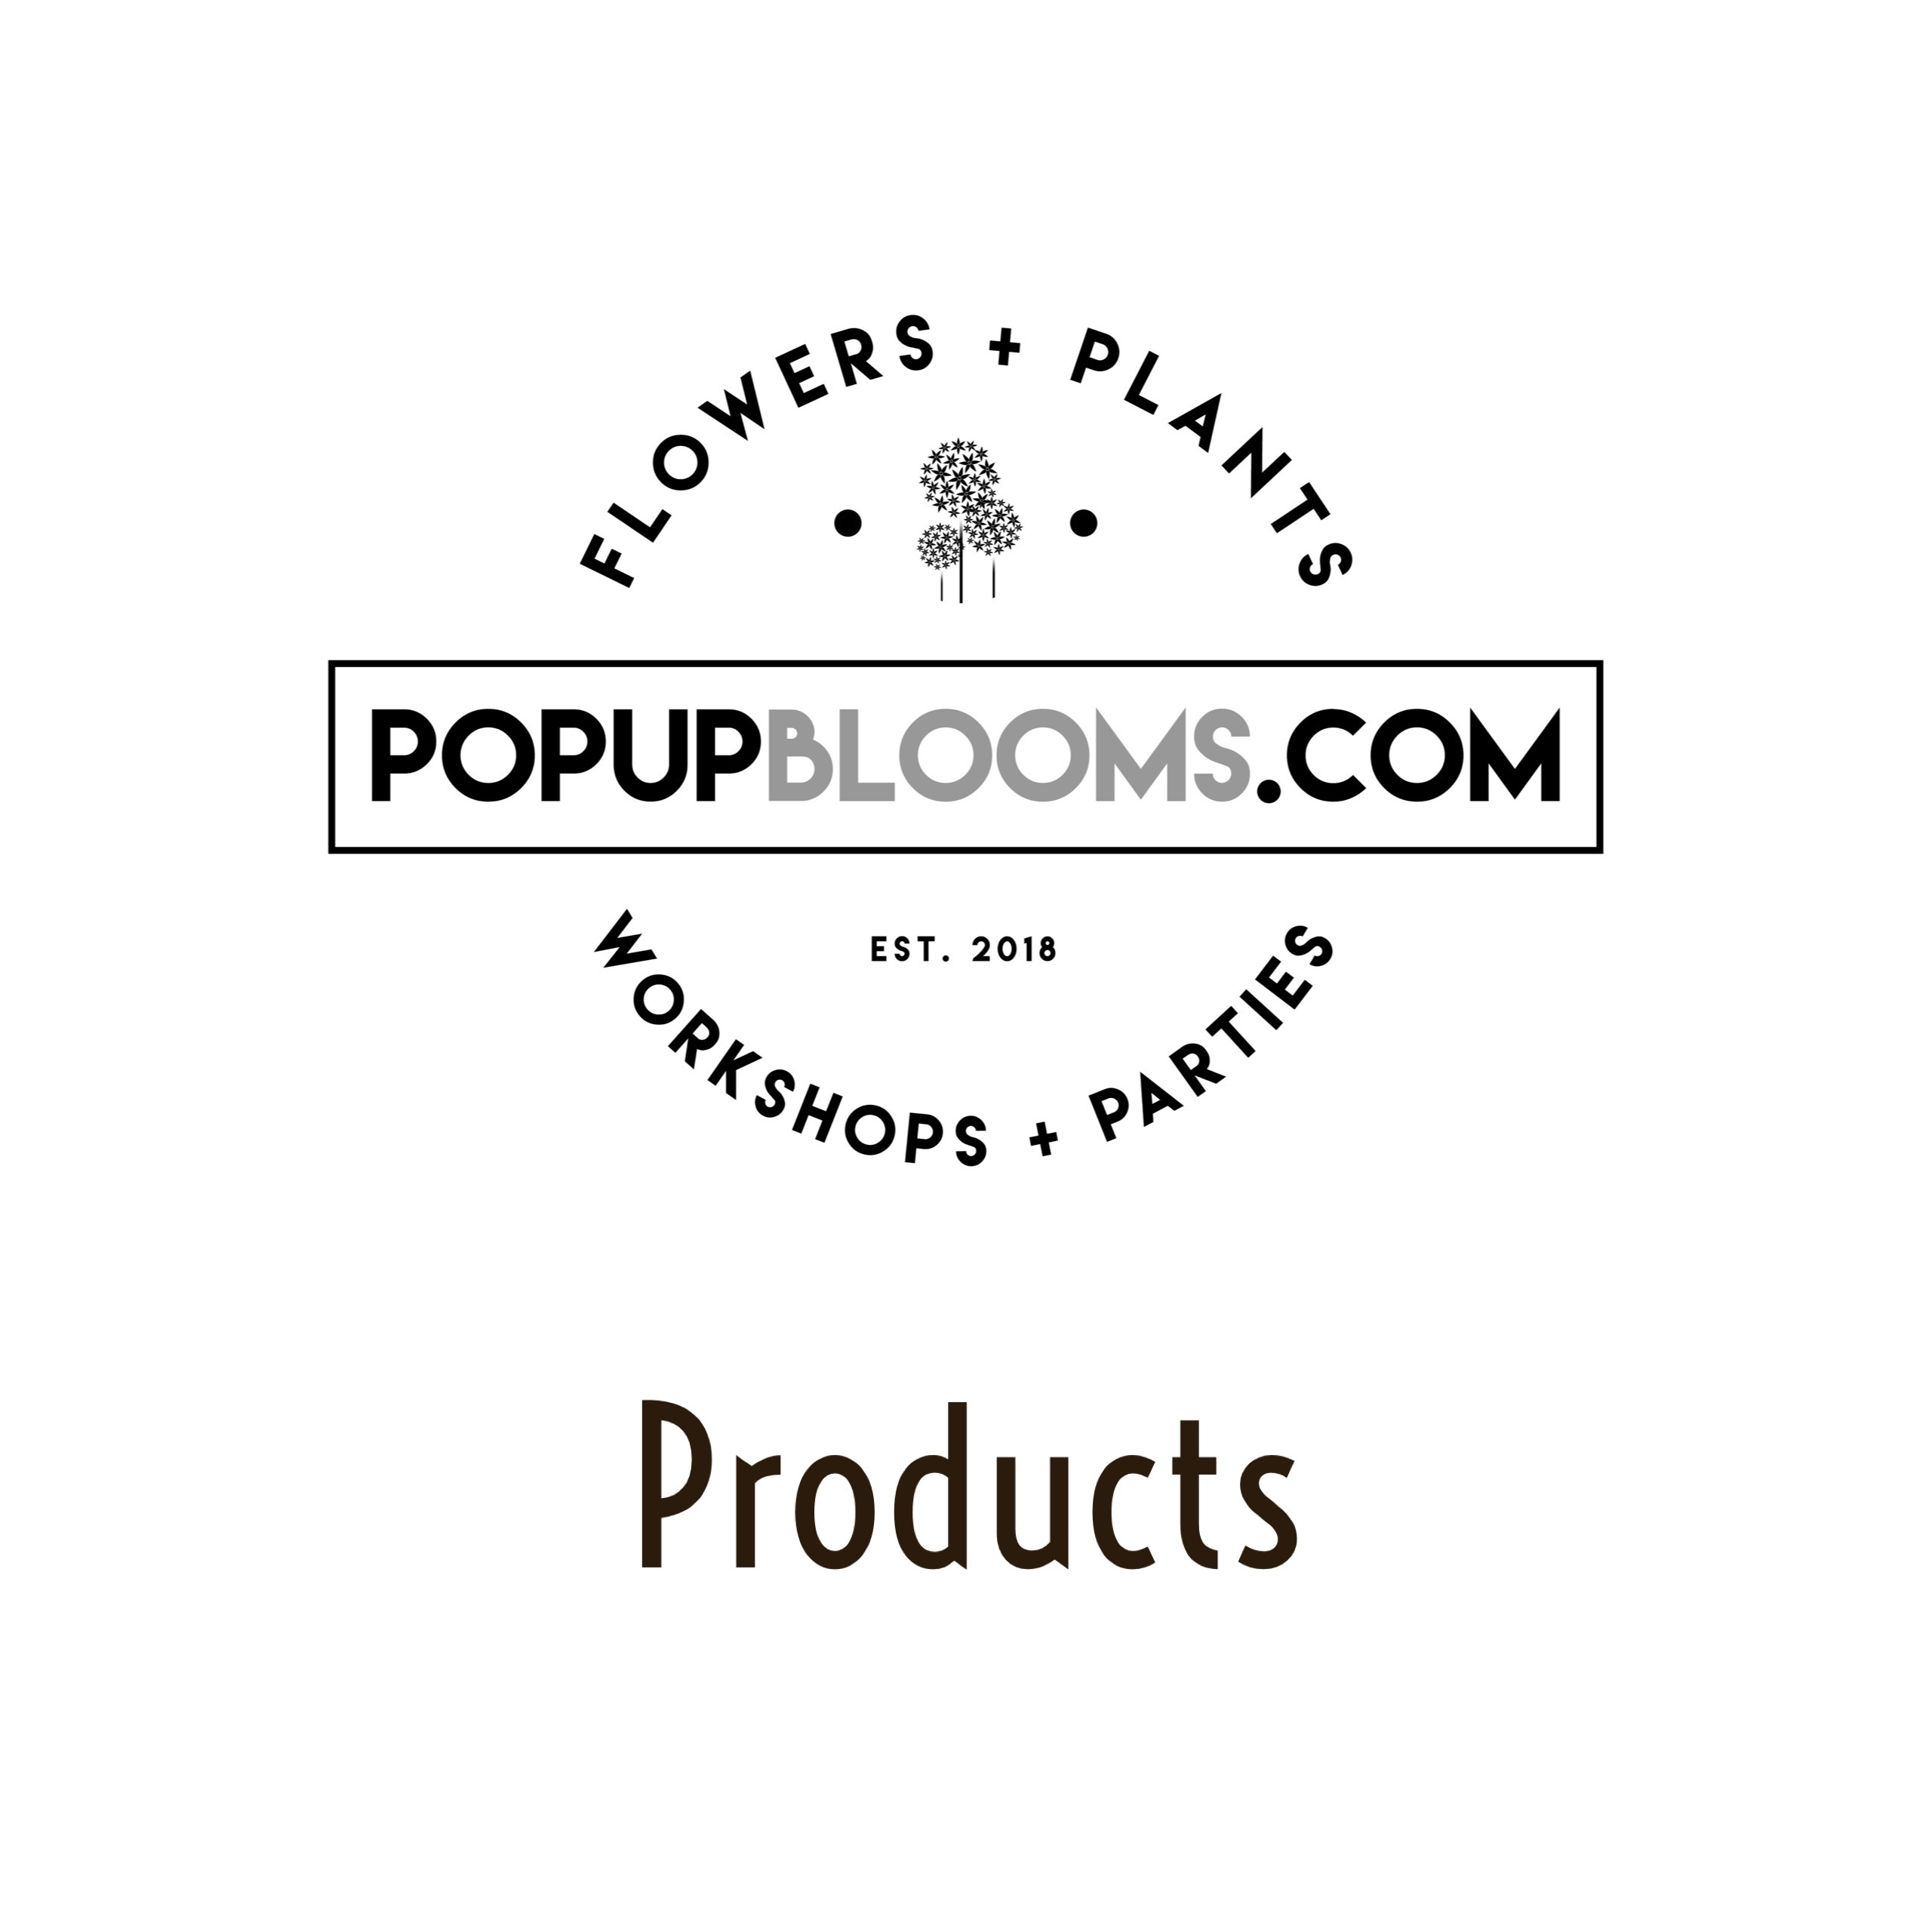 popupblooms products